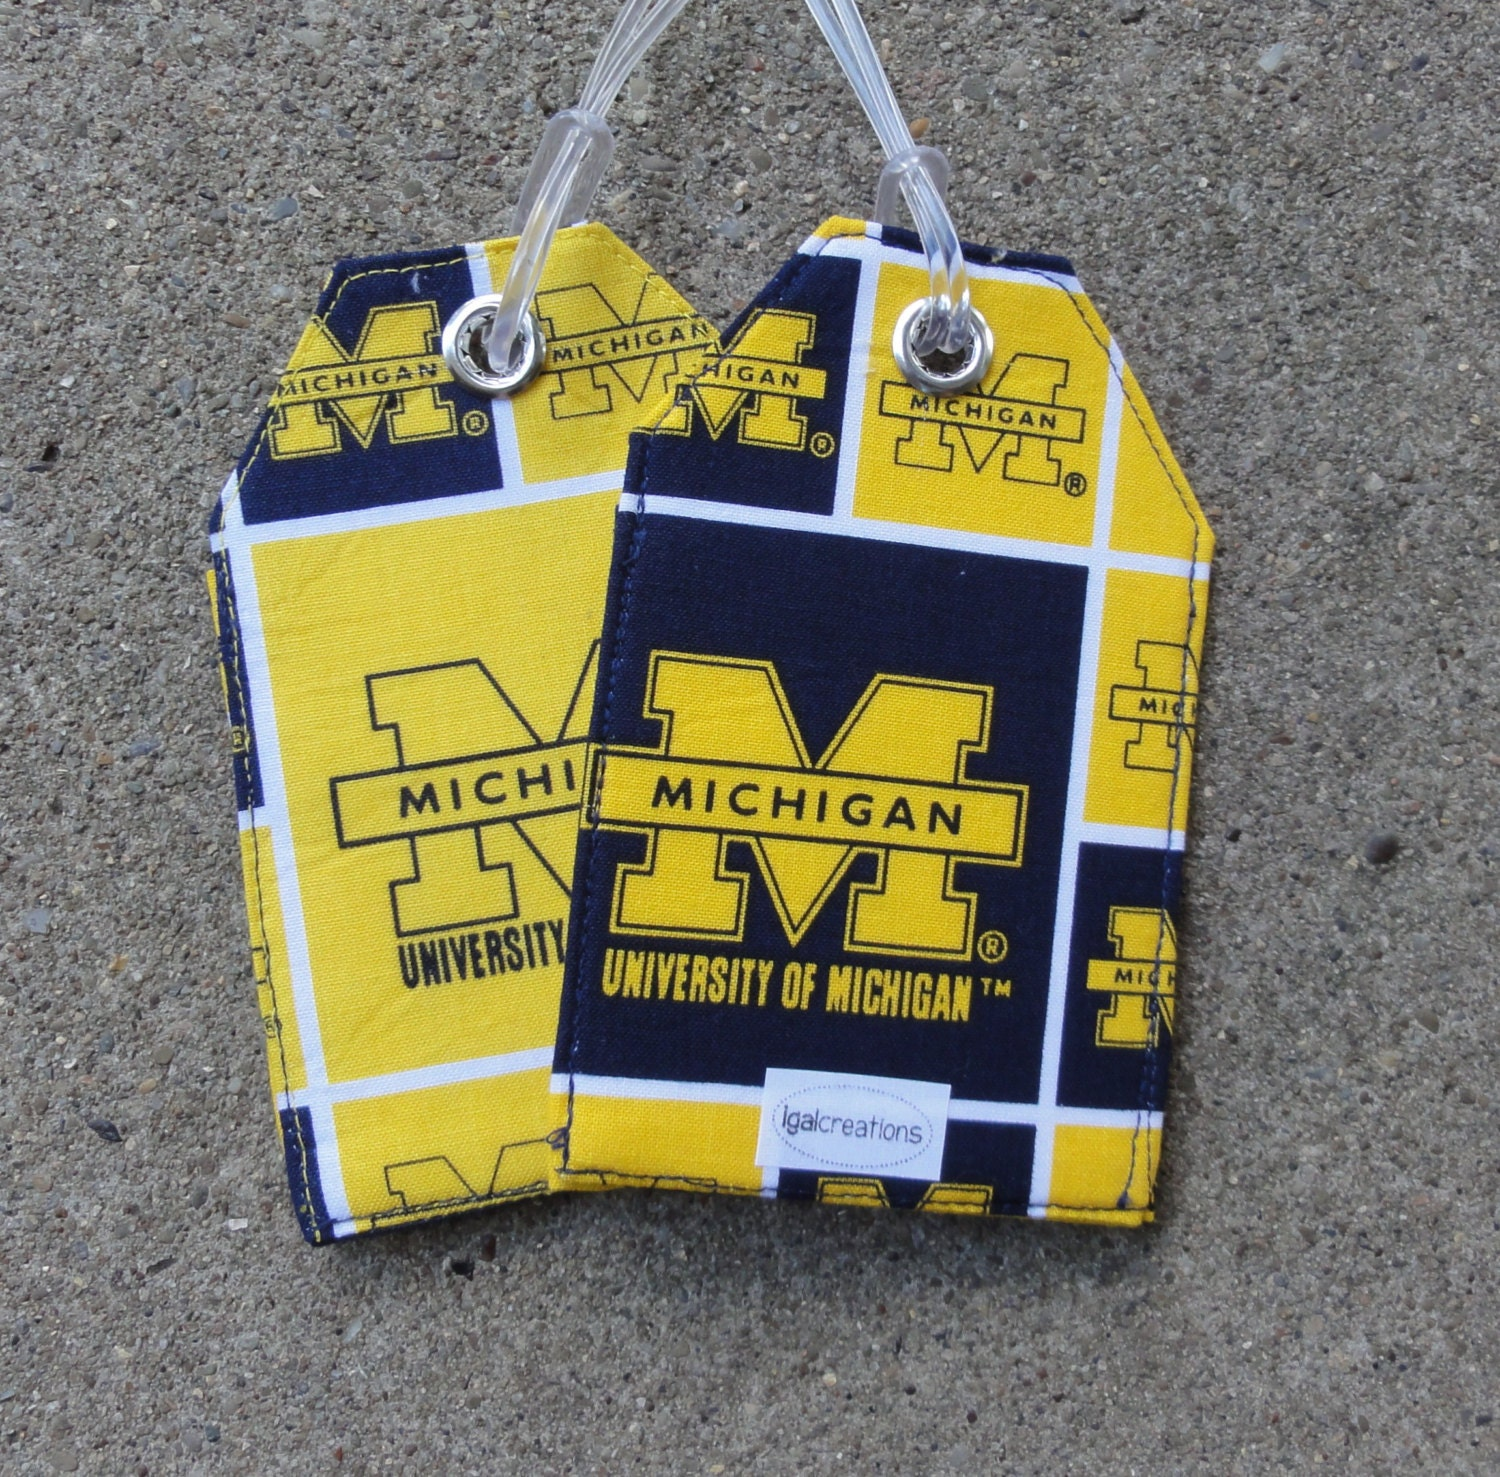 Badge Holder Luggage Tags made from University of Michigan